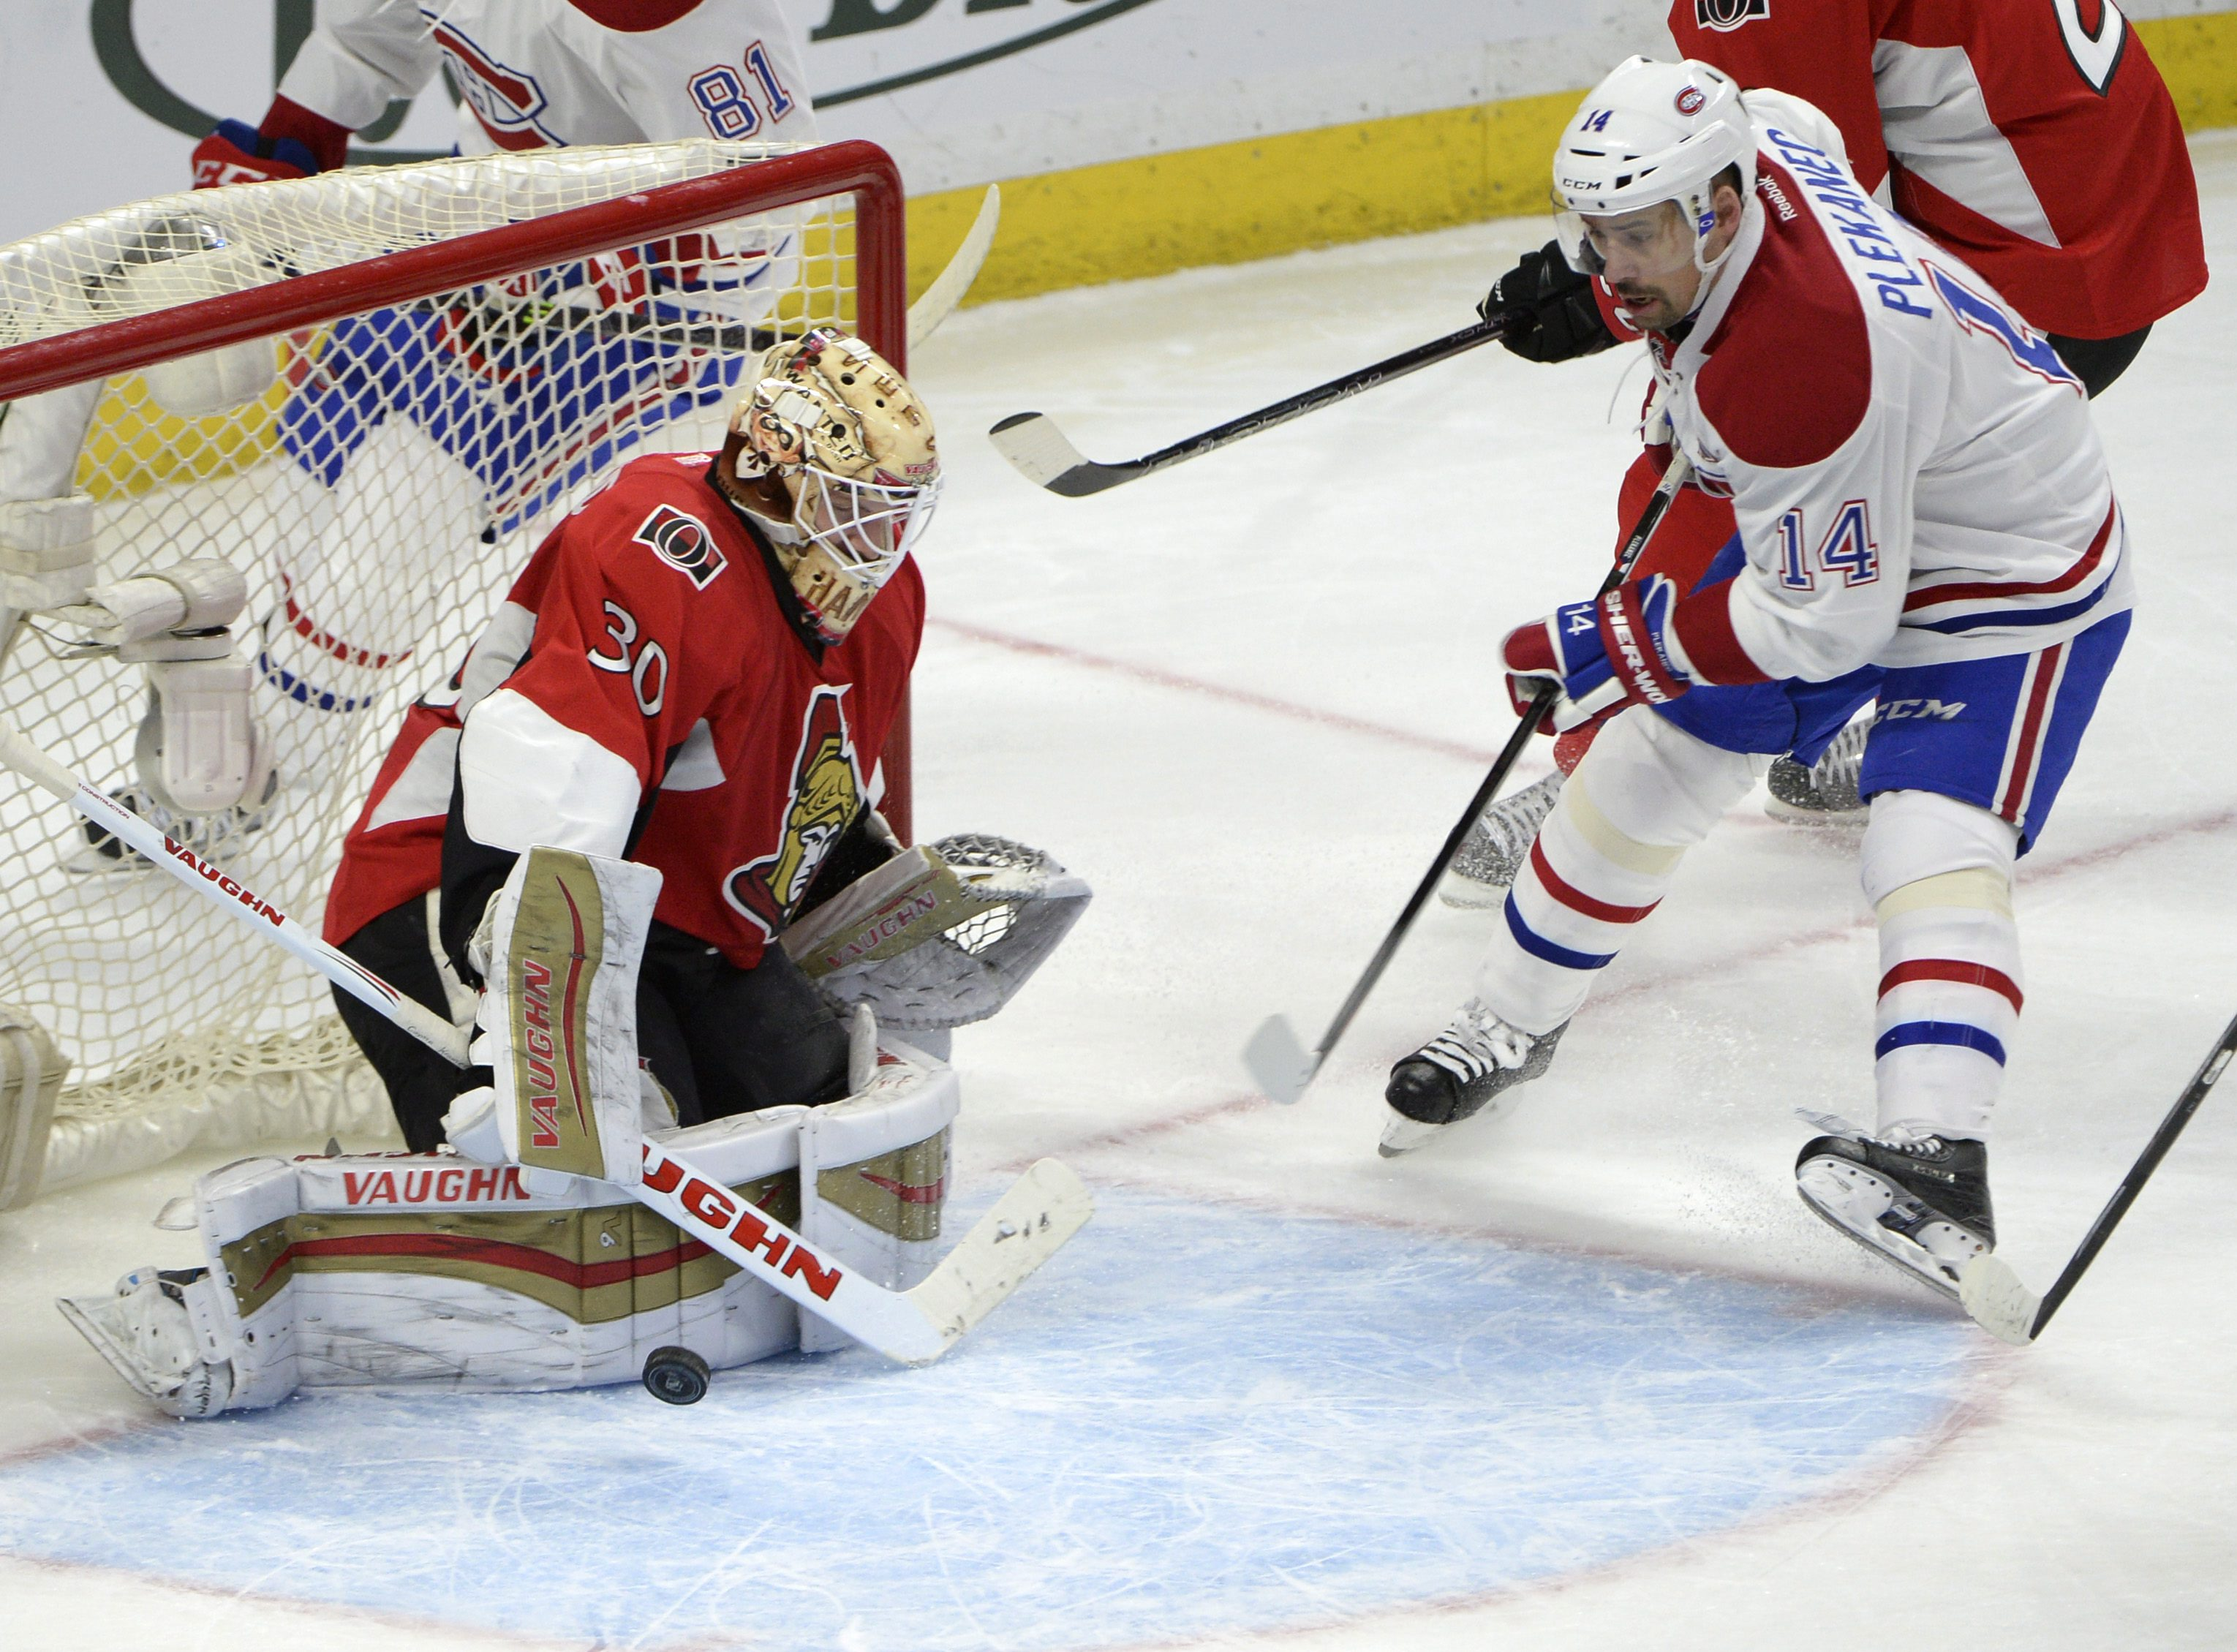 Montreal Canadiens' Tomas Plekanec (14) stops outside the crease as the puck passes Ottawa Senators goalie Andrew Hammond (30) during the second period of an NHL hockey game Saturday, March 19, 2016, in Ottawa, Ontario. (Justin Tang/The Canadian Press via